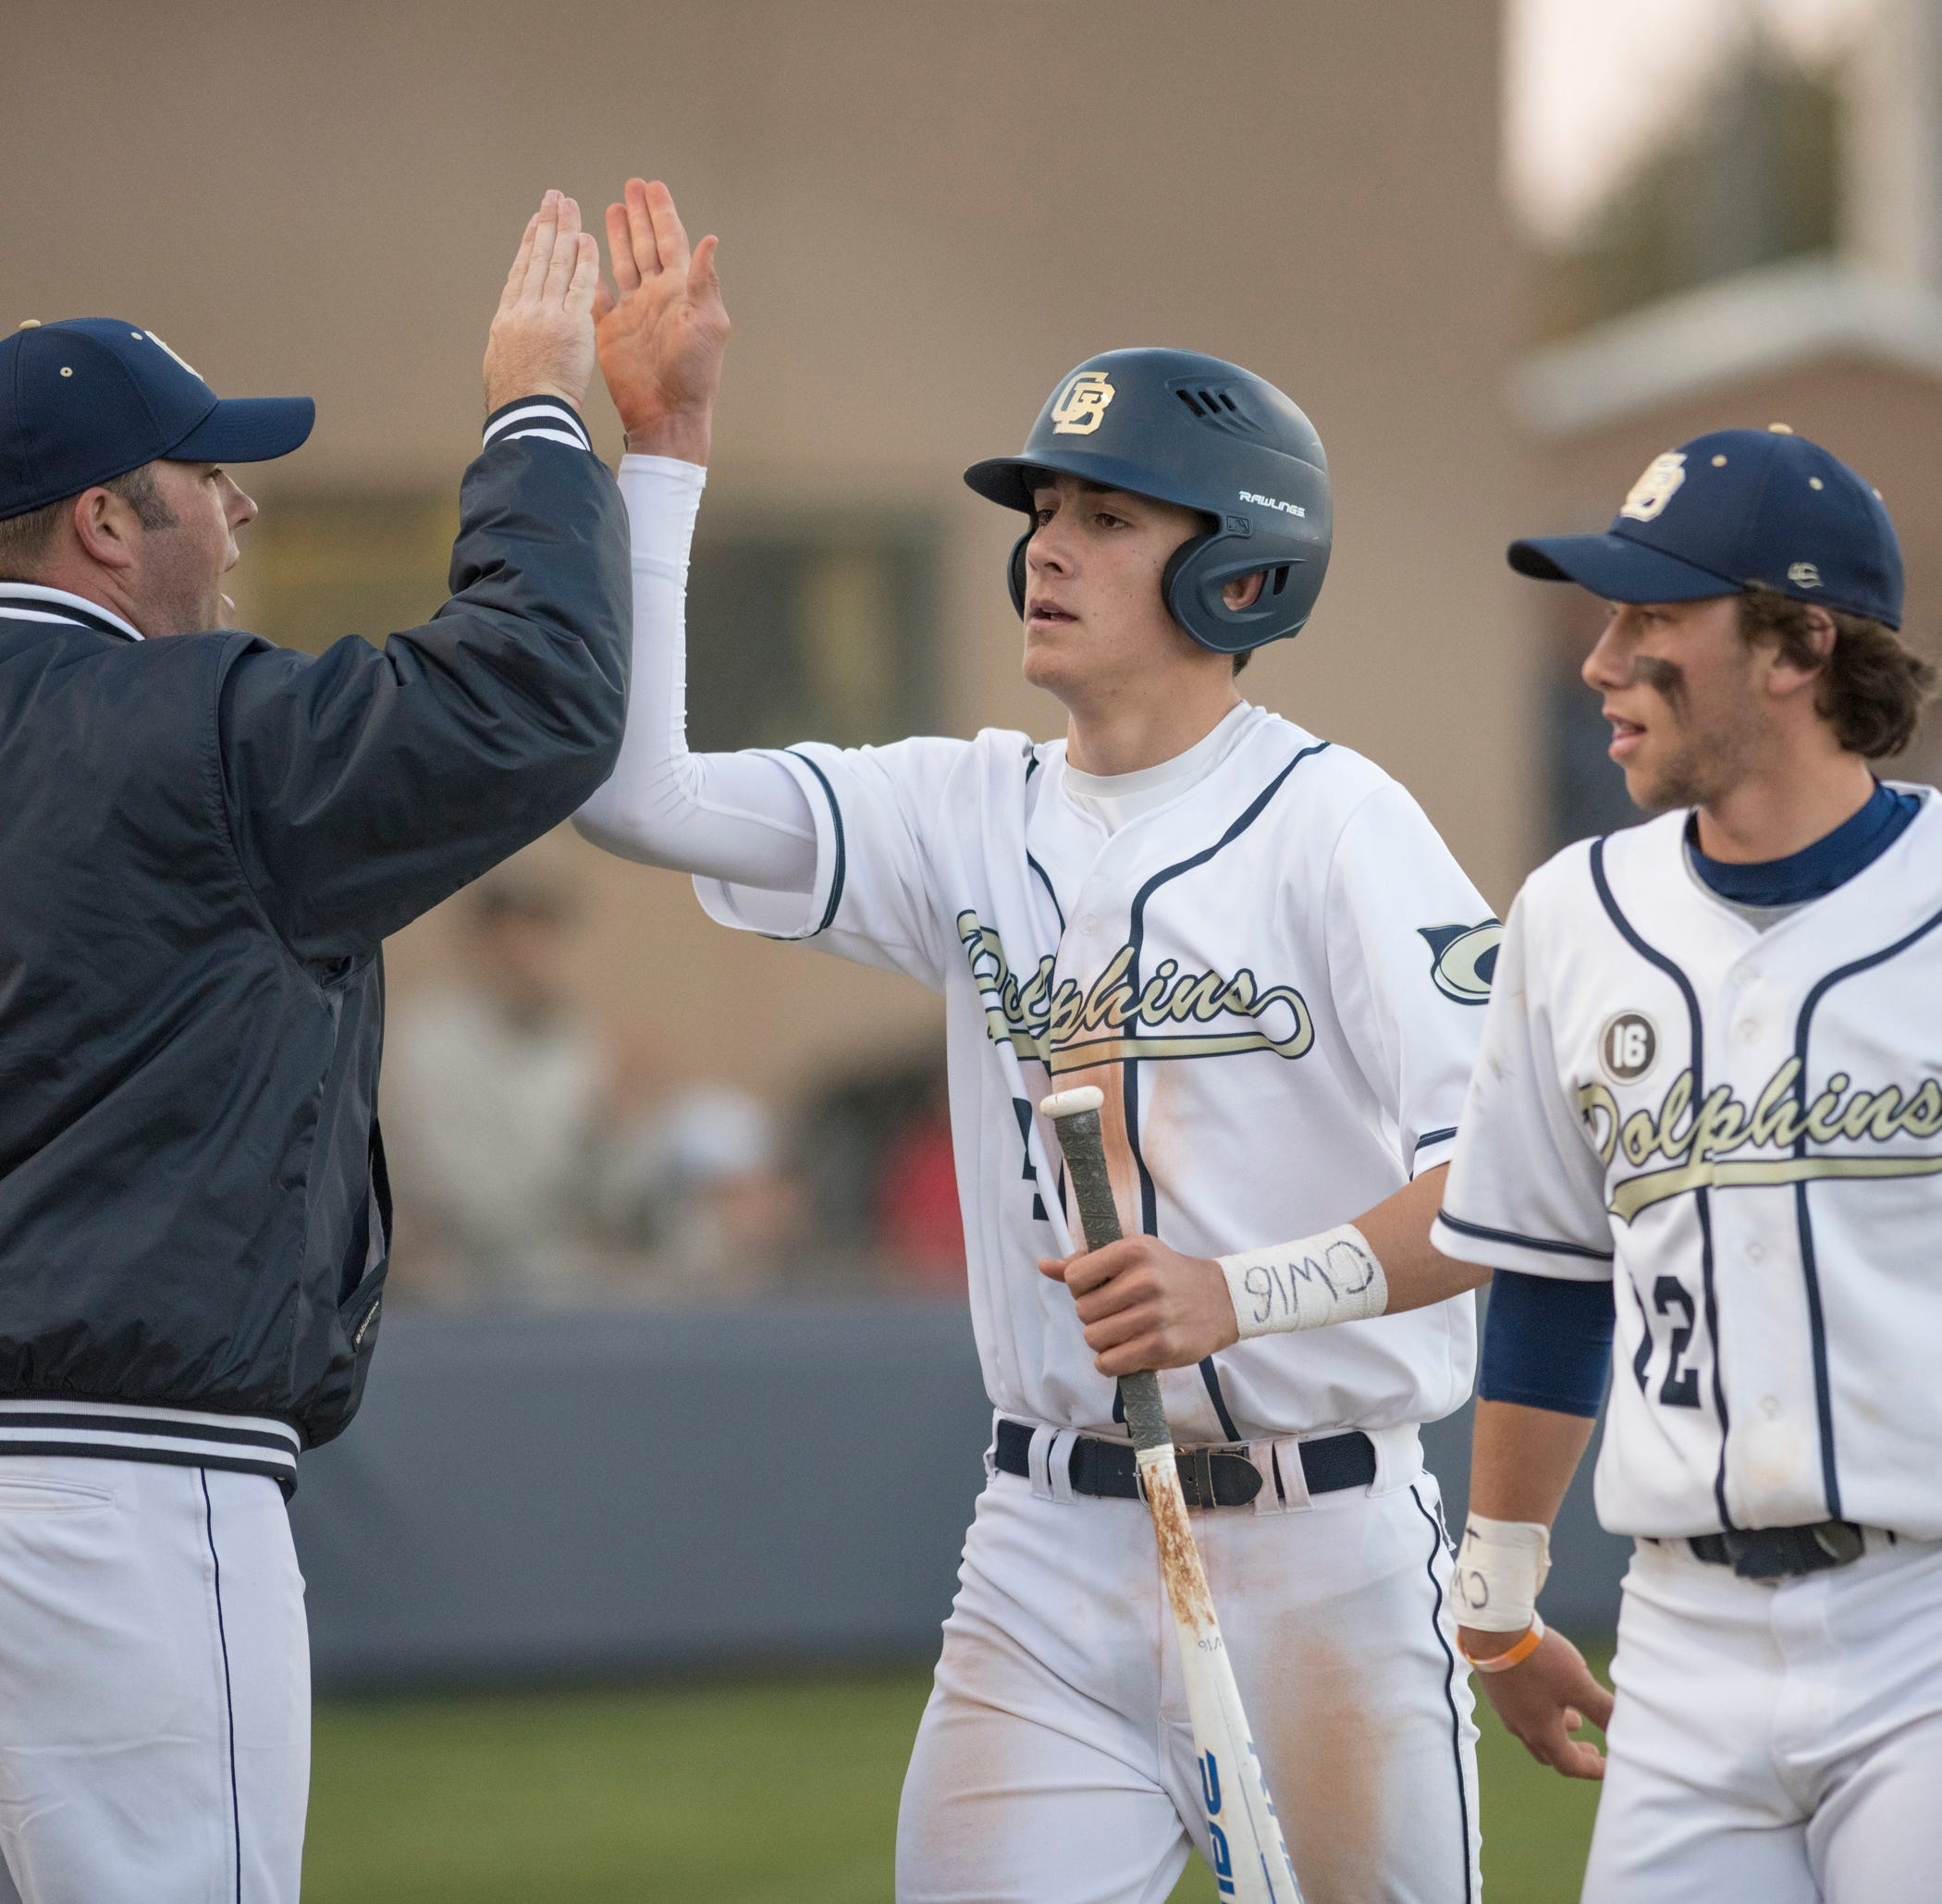 Gulf Breeze baseball gets signature win, beating Pace after Massey's clutch homerun